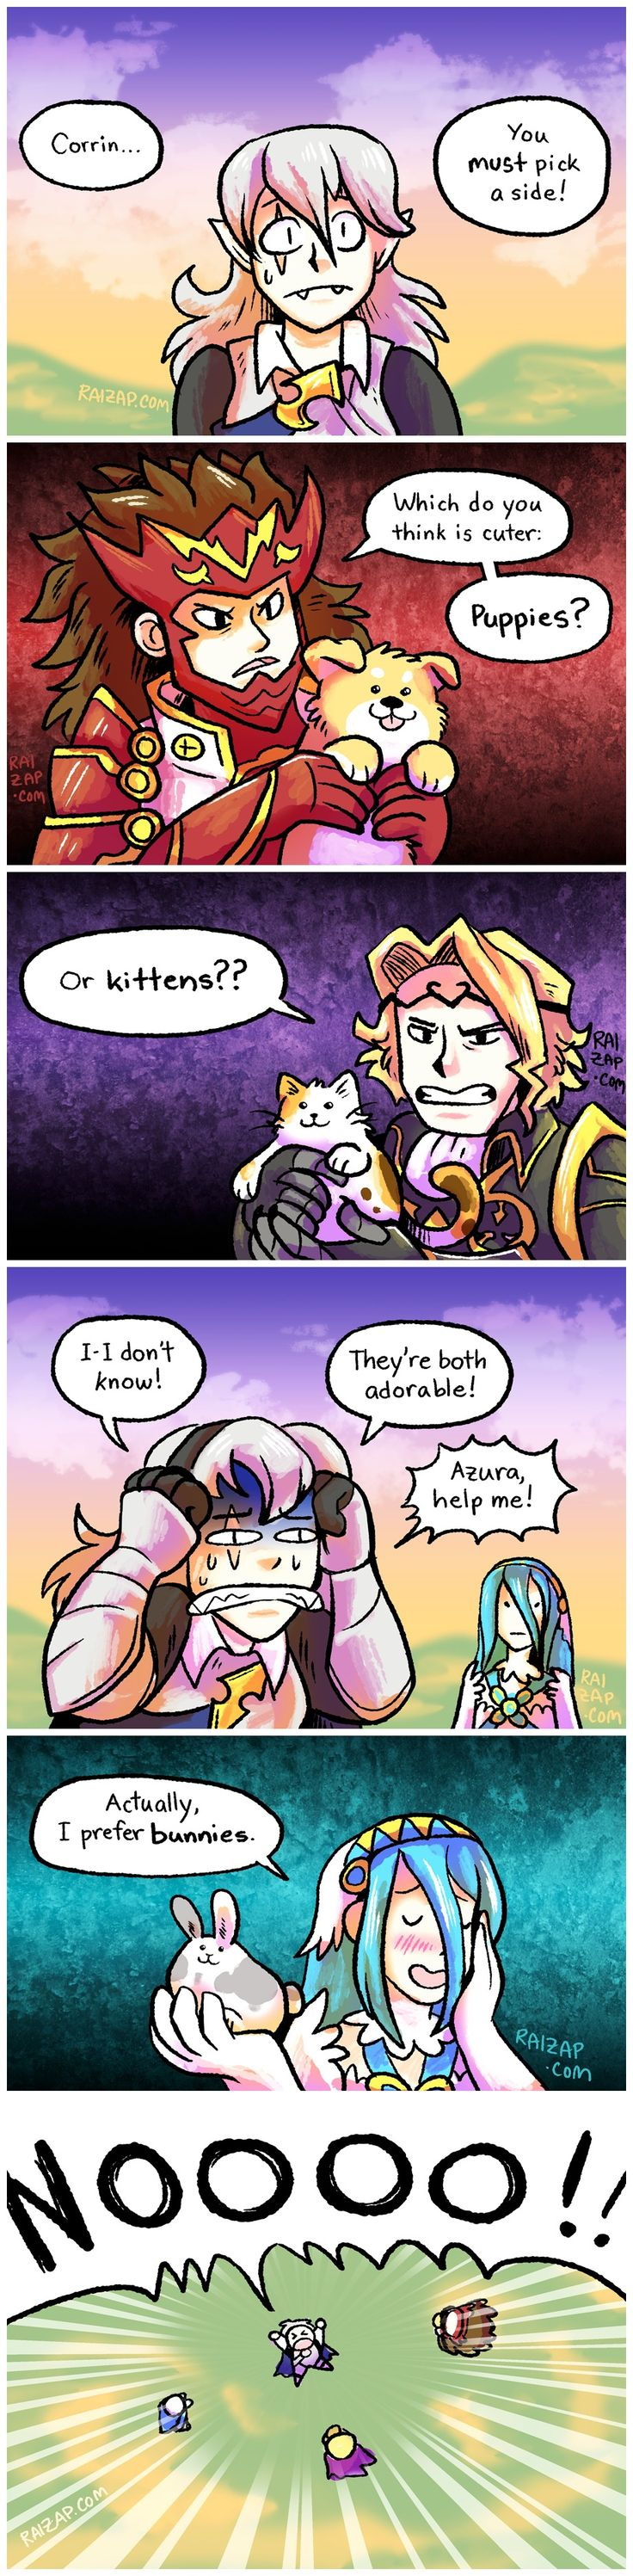 Fire Emblem: If/Fates comic....THATS EXACLY HOW THE PROBLEM IS /// I knew there was a reason I chose Nohr